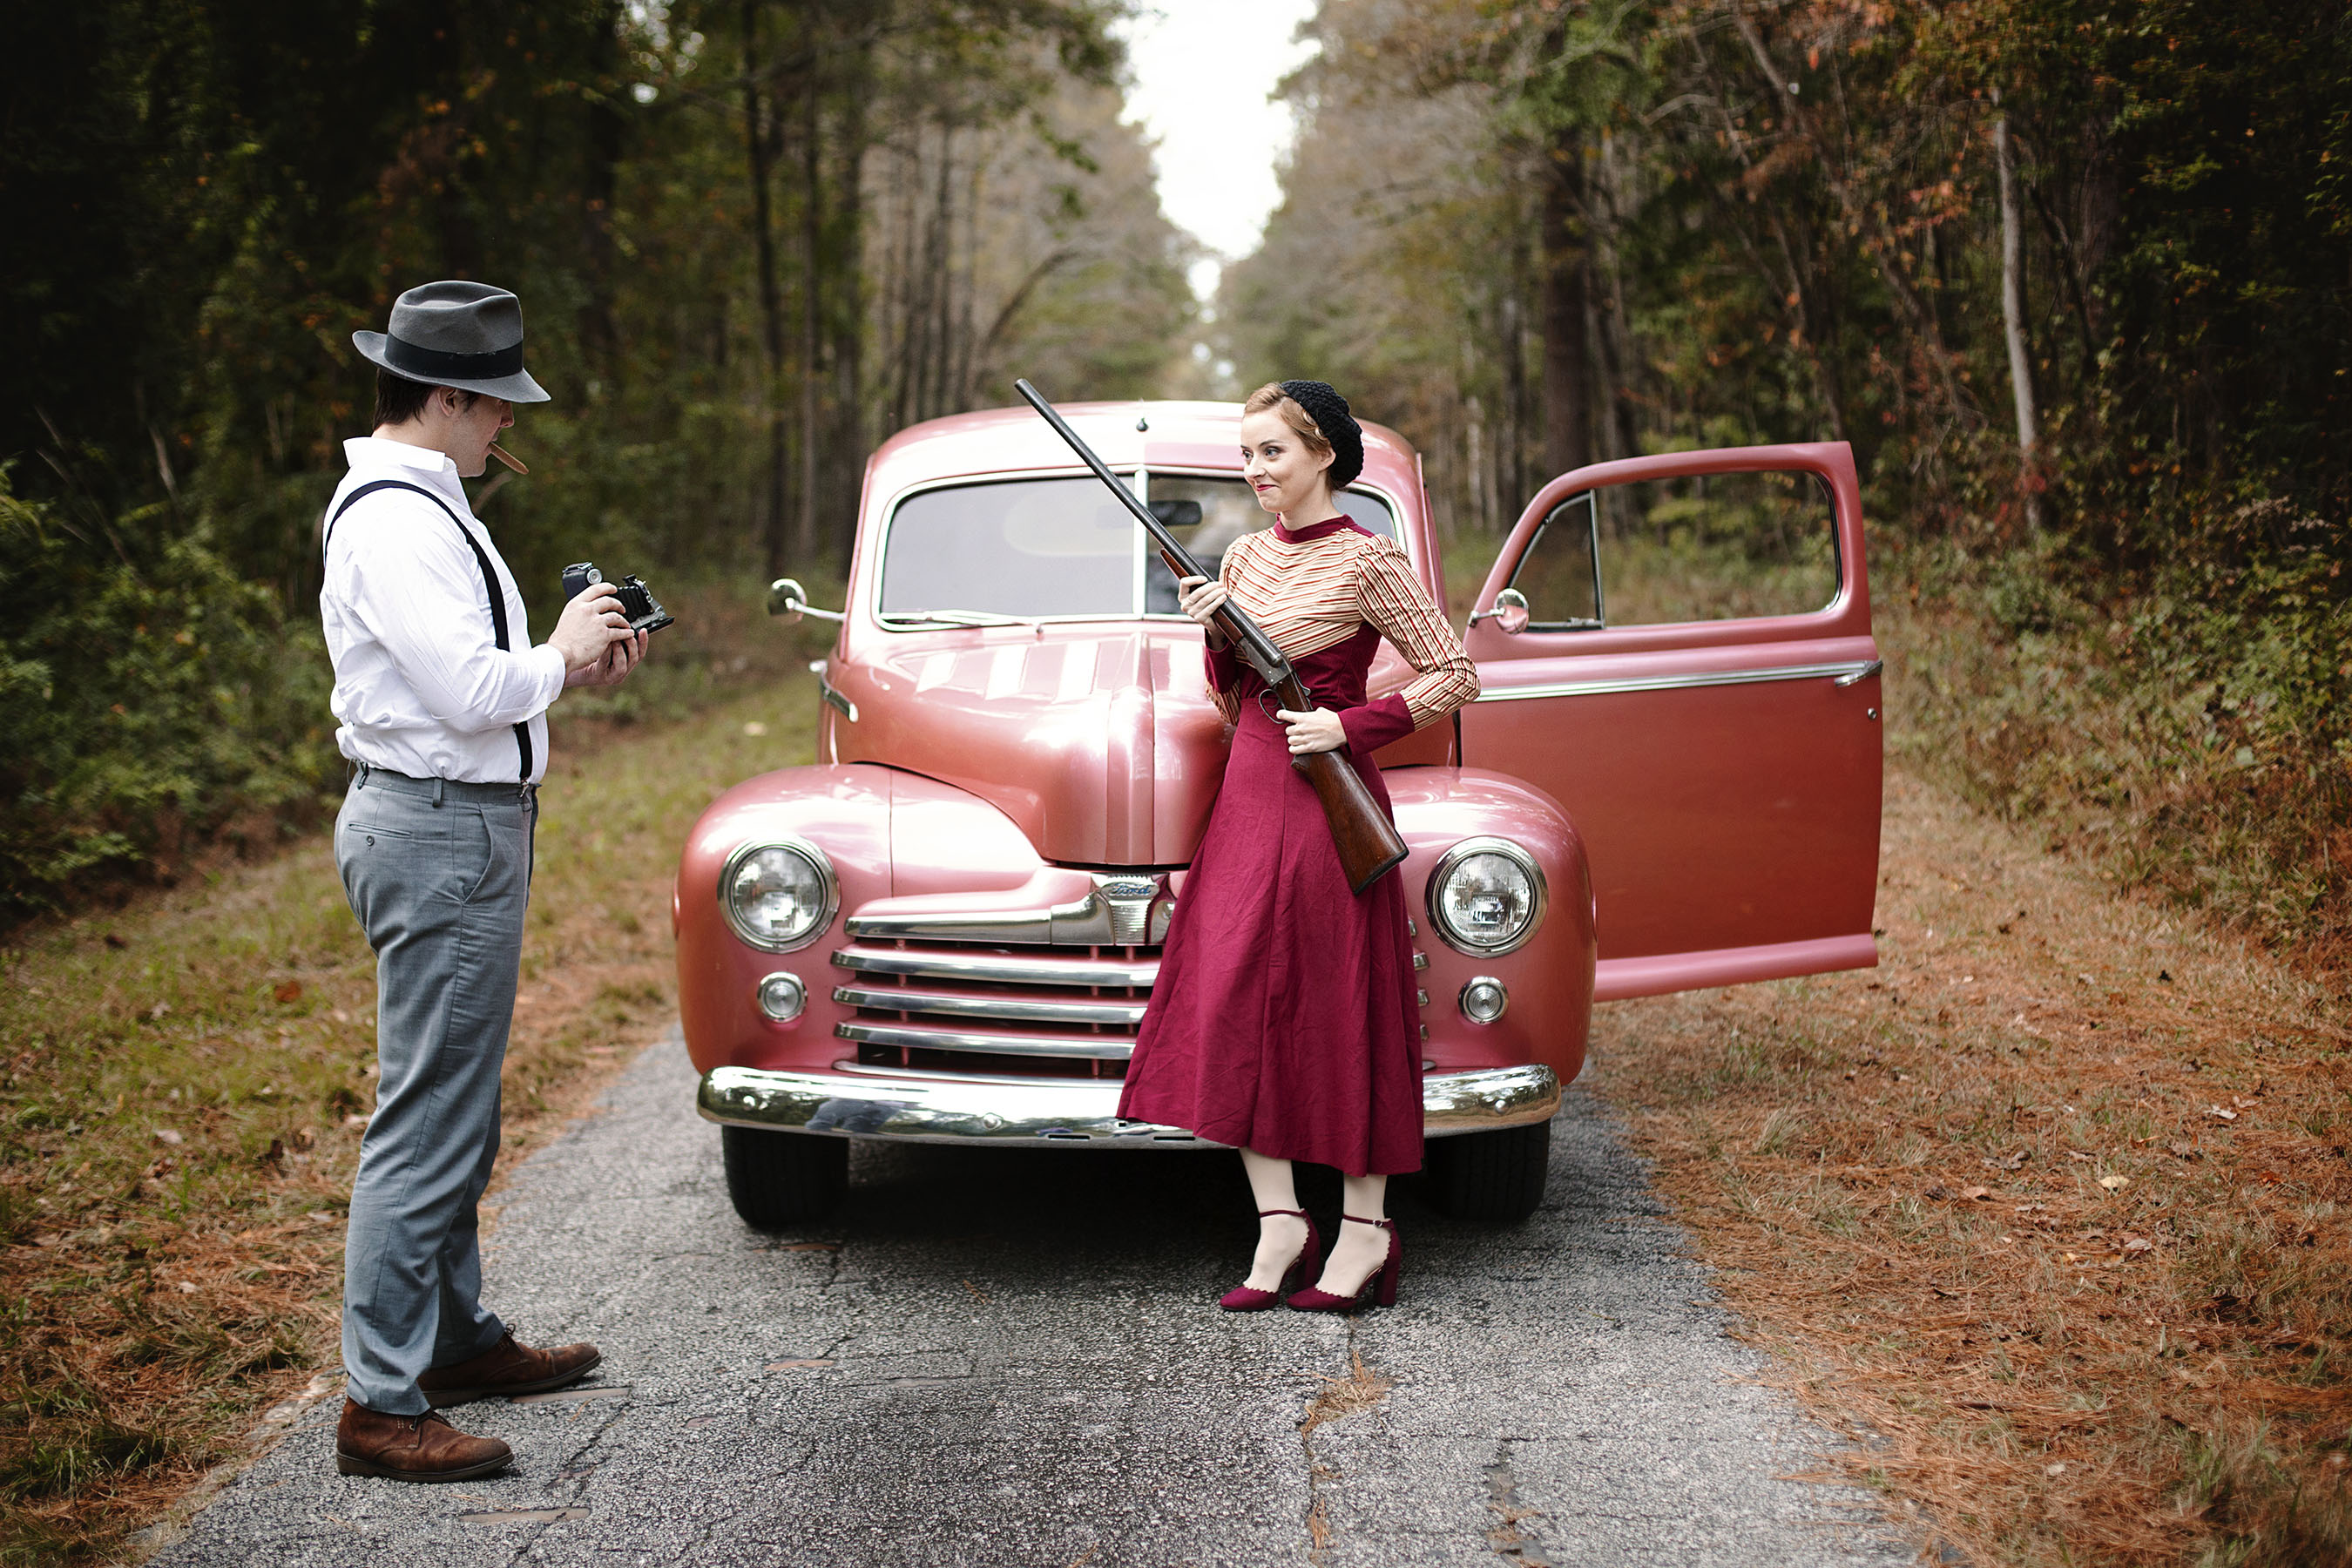 Bonnie and Clyde7